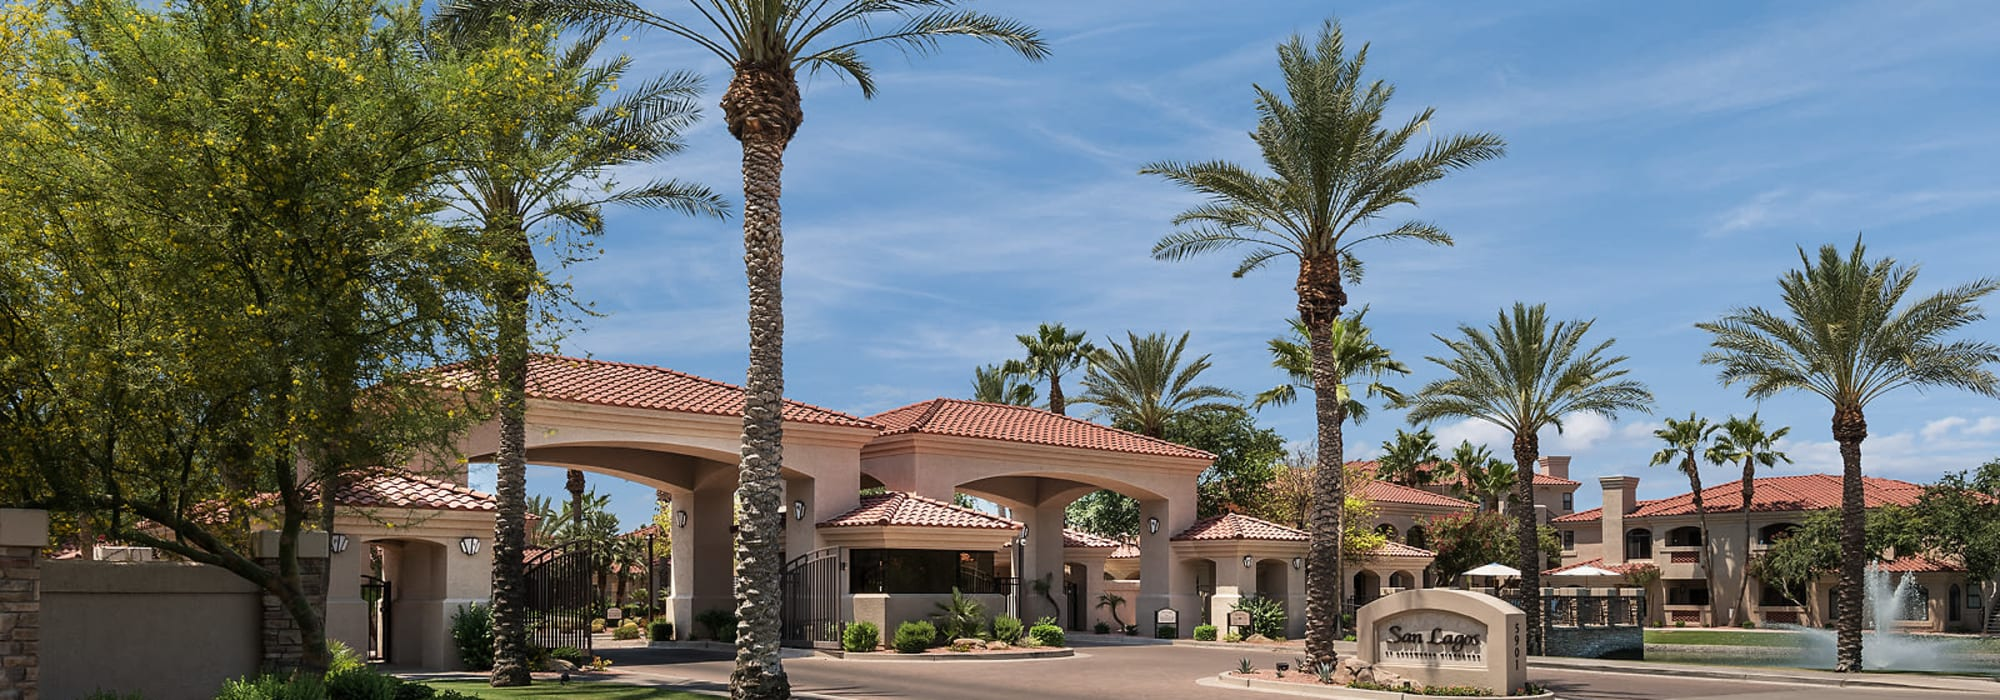 Apartment community entryway at San Lagos in Glendale, Arizona